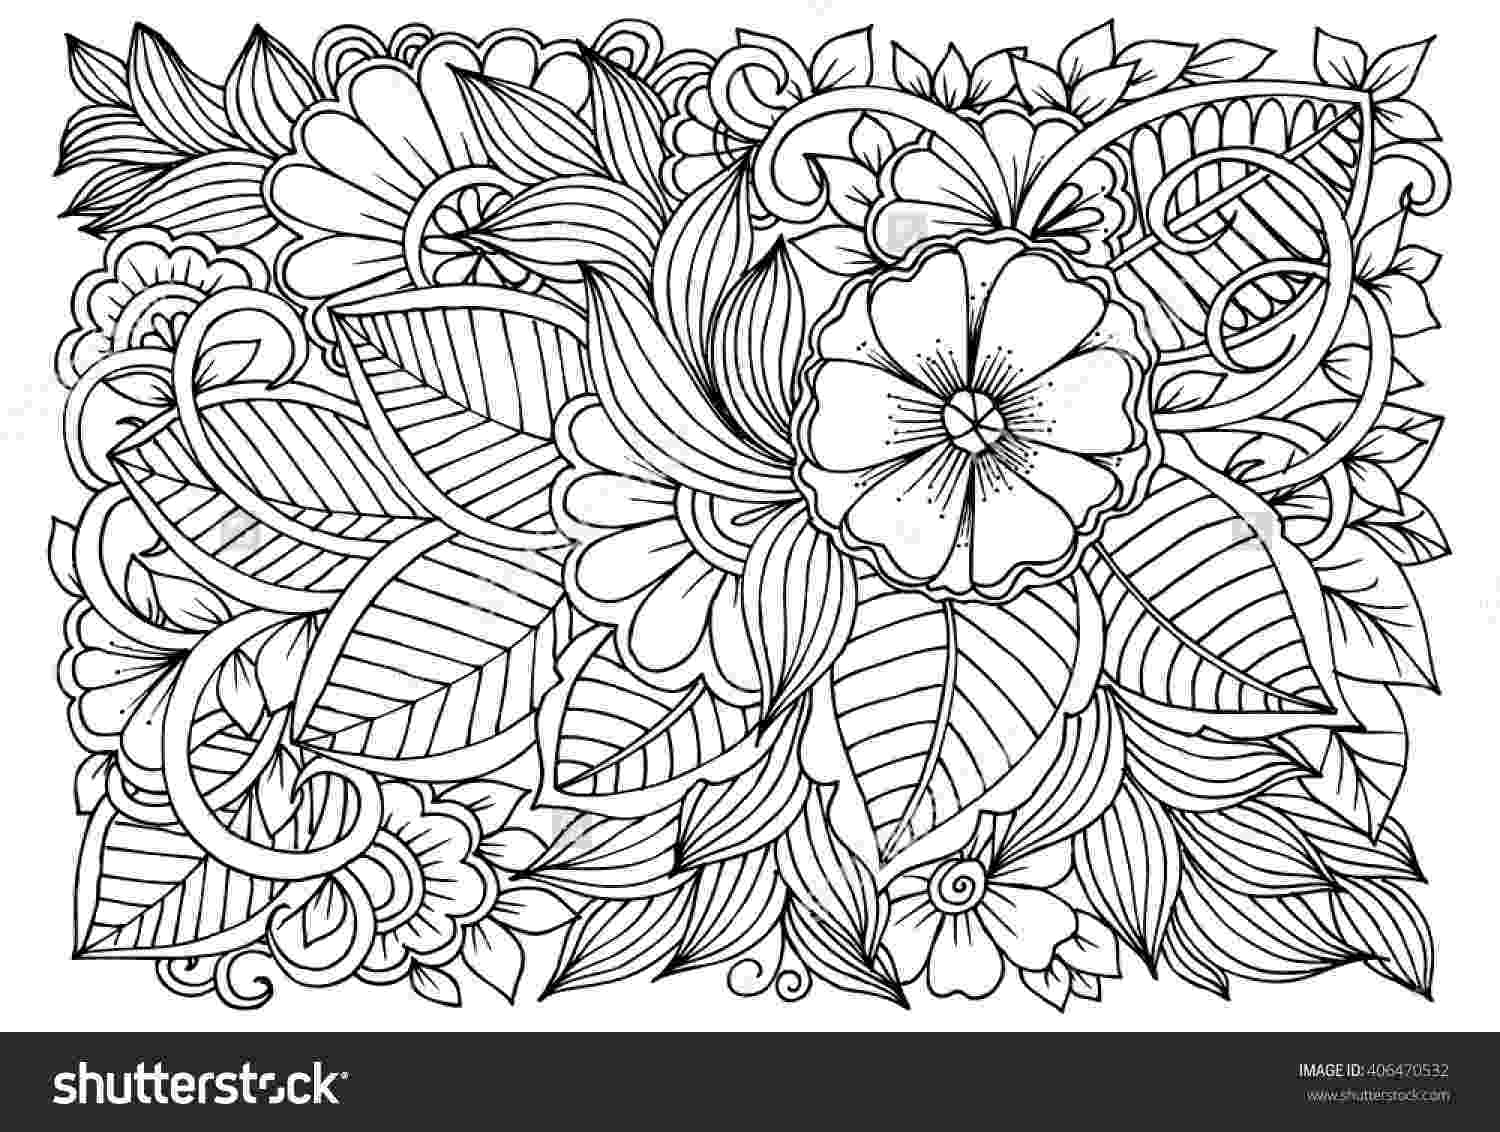 relaxing coloring pages hey mom here39s a relaxing coloring page for you pages coloring relaxing